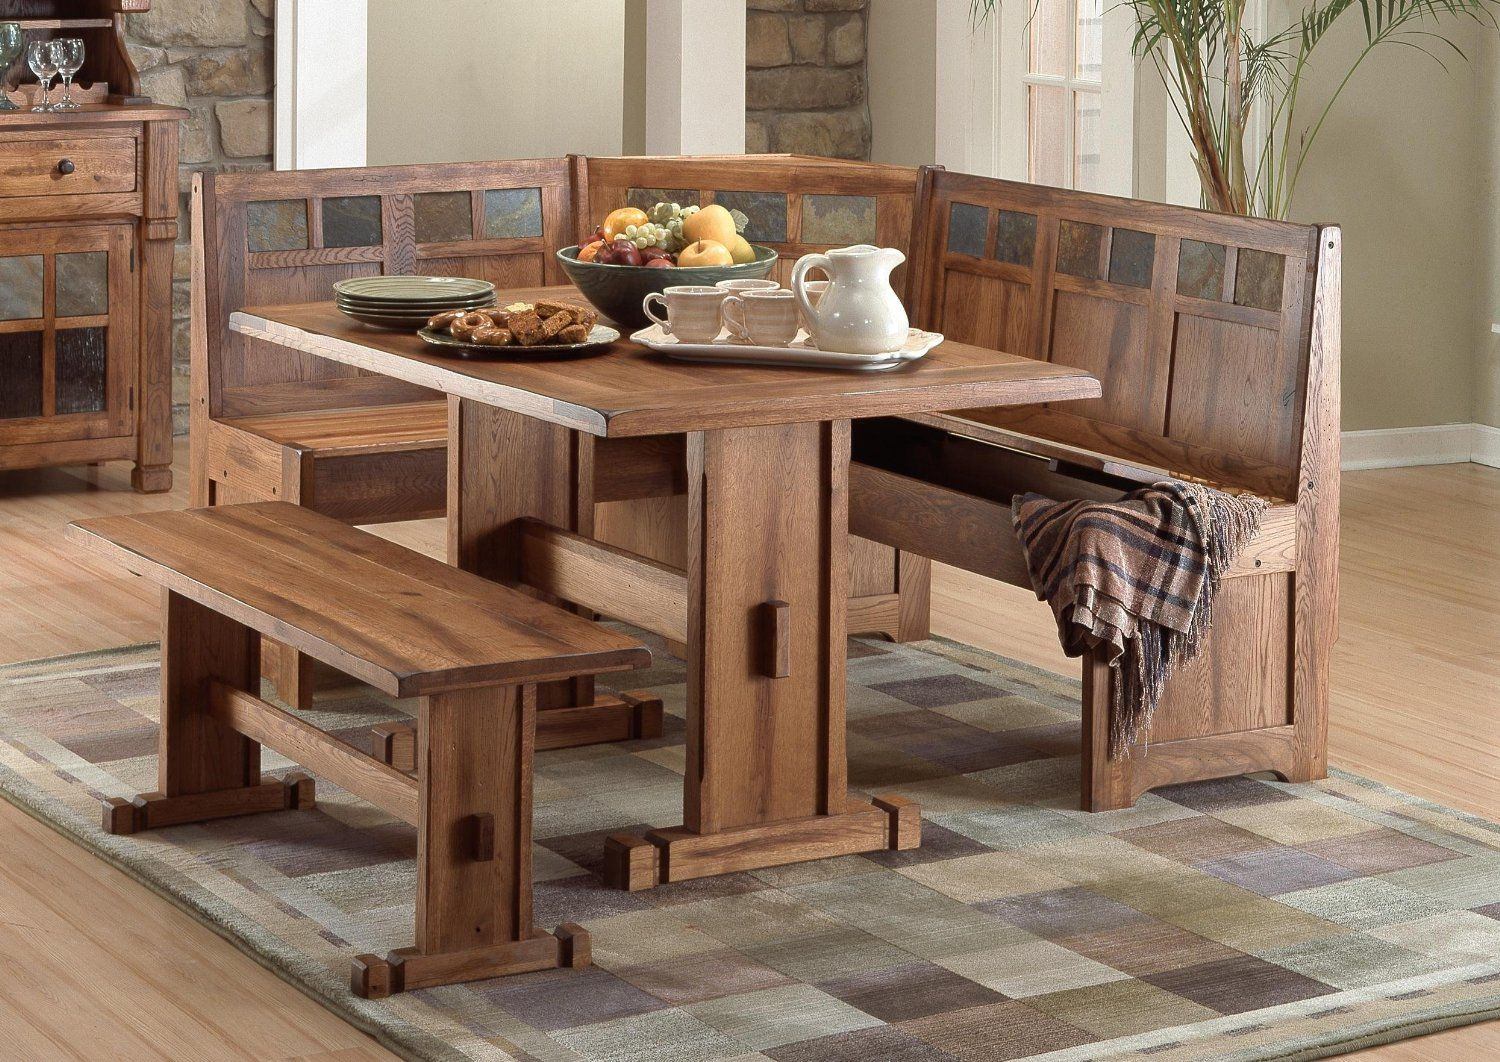 Bench For Kitchen Table Facet Wood With Seating Designs Ideas Dining